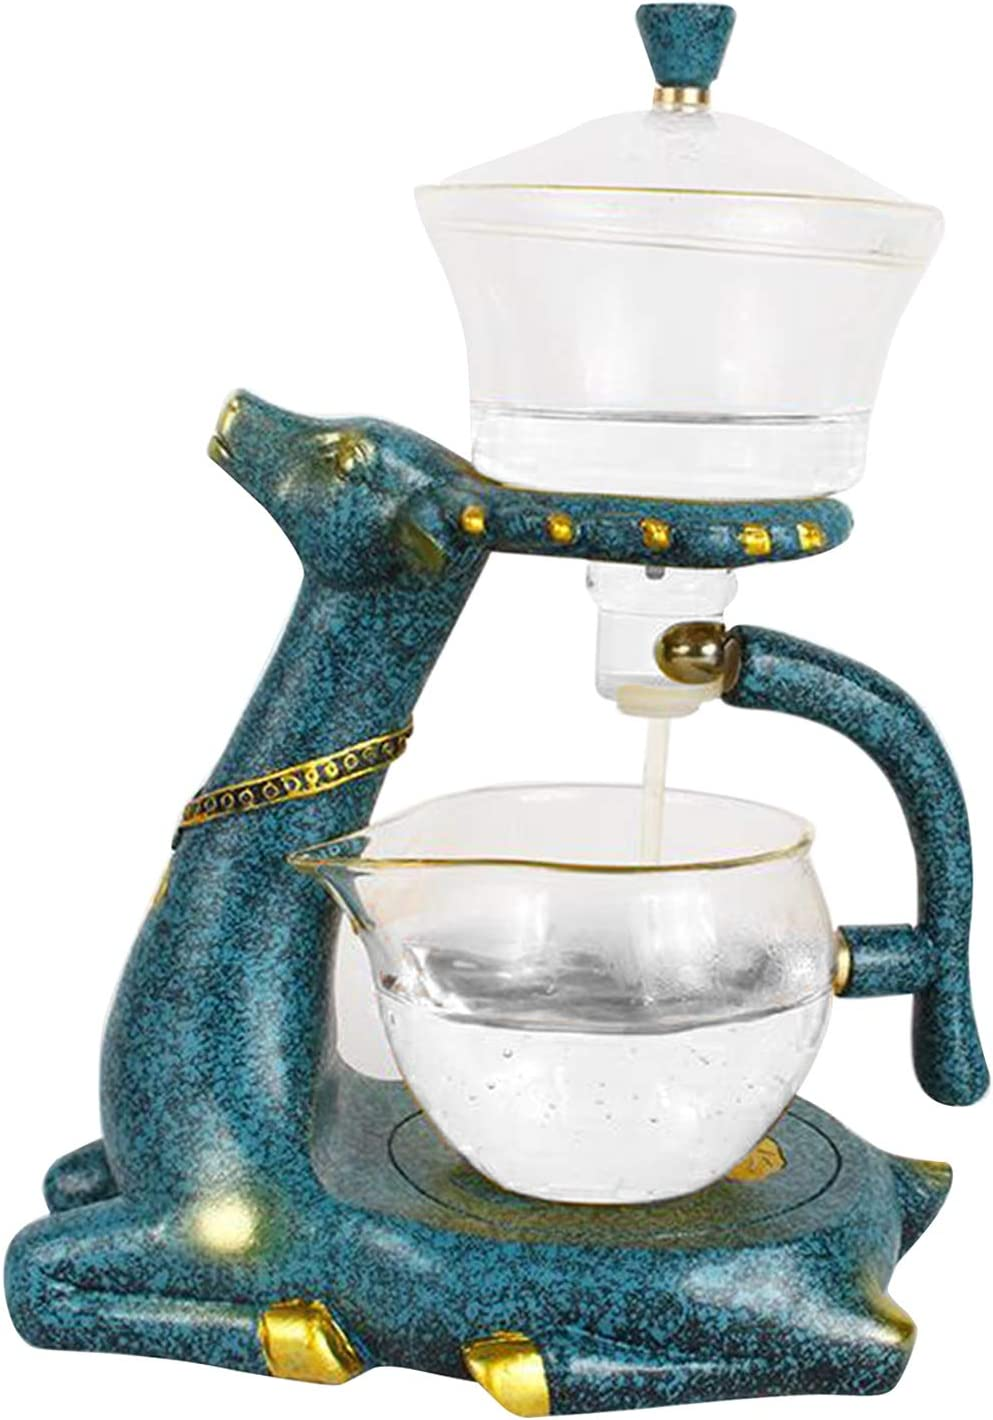 Surprise Challenge the lowest price price Prettyia 350ml Glass Teapot Infuser Teacup Fragrant Ool Pot Drip